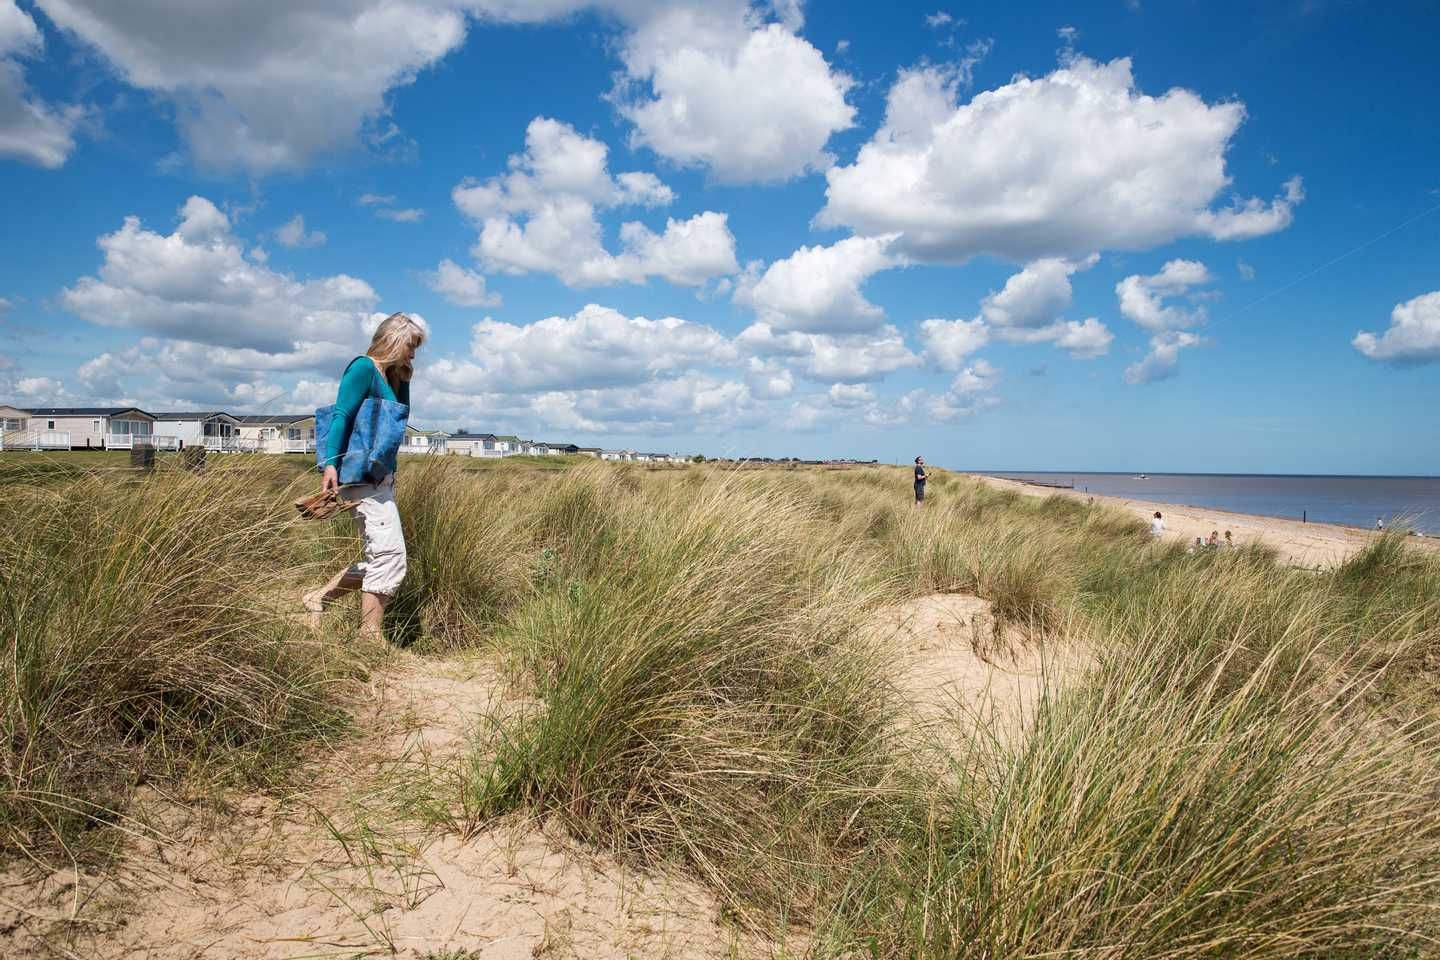 A lady holding her shoes as she walks across sand dunes towards the main beach and sea on a blue, sunny day with some white fluffy clouds in the sky